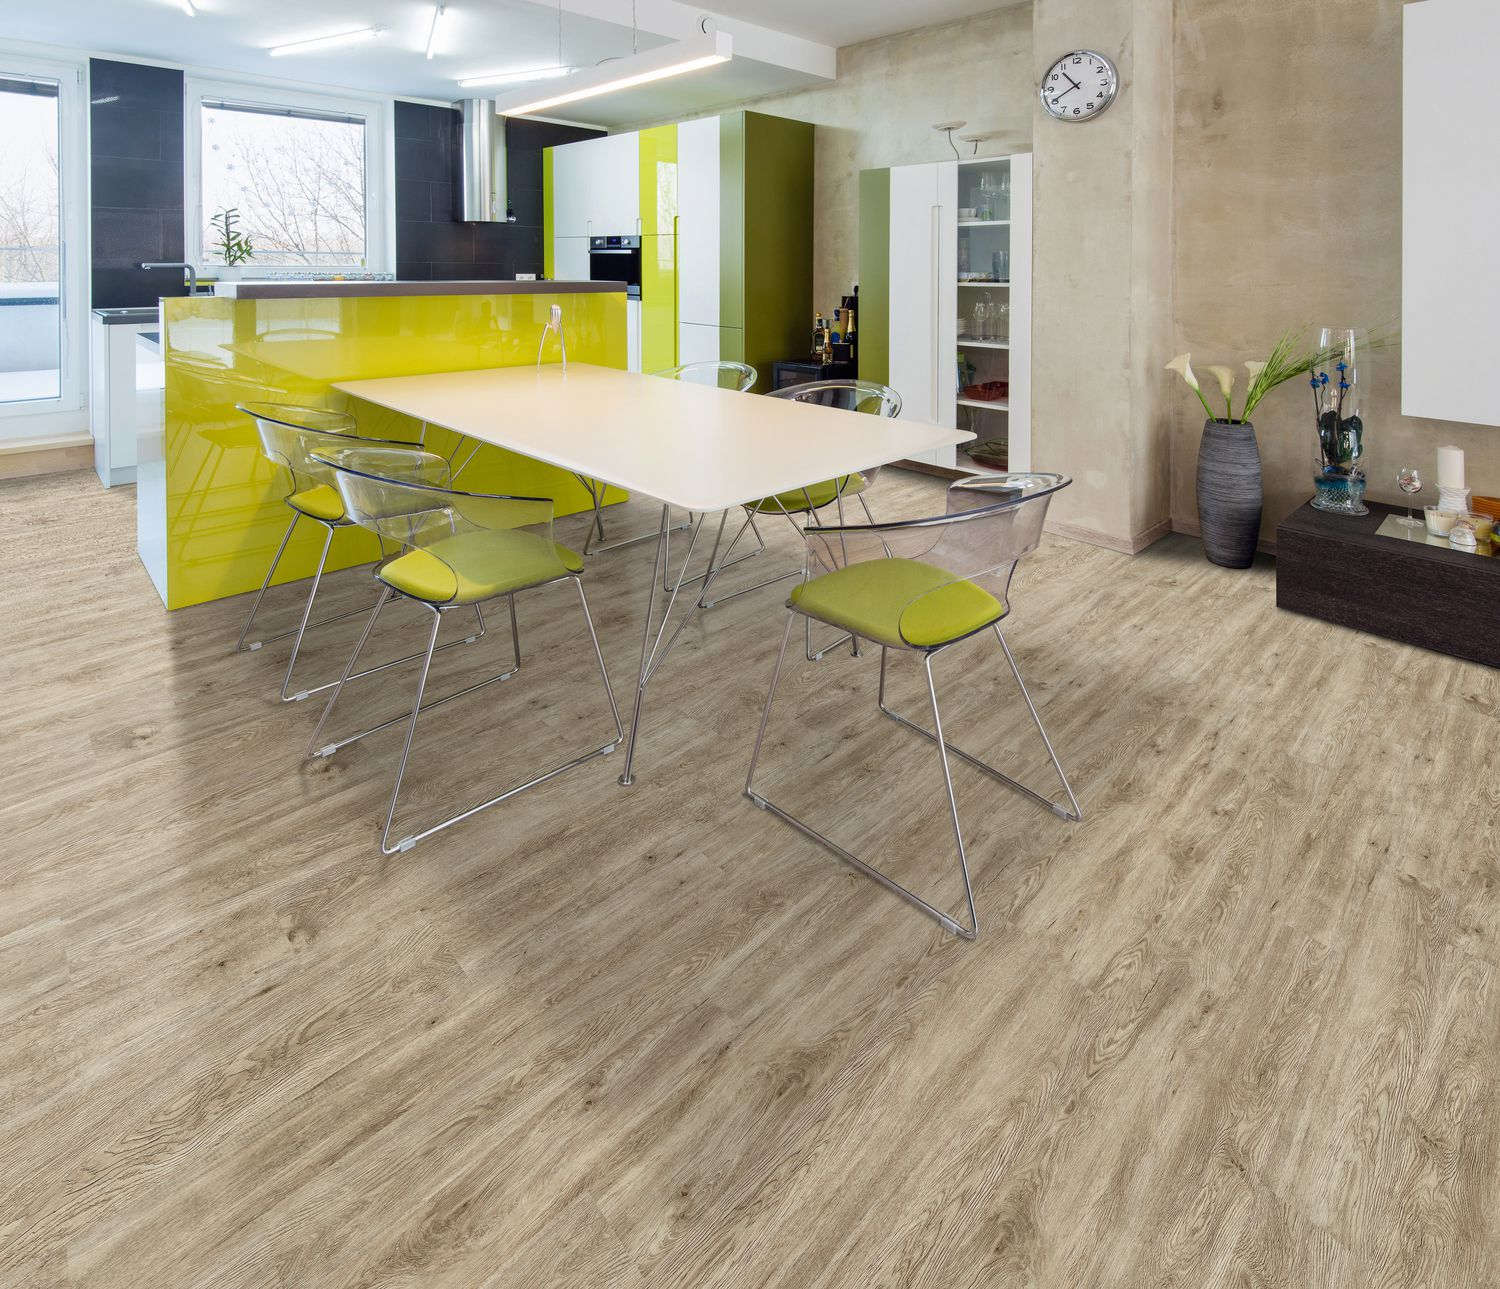 b diy m departments floors flooring bq pack q laminate concertino oak kolberg at effect prd